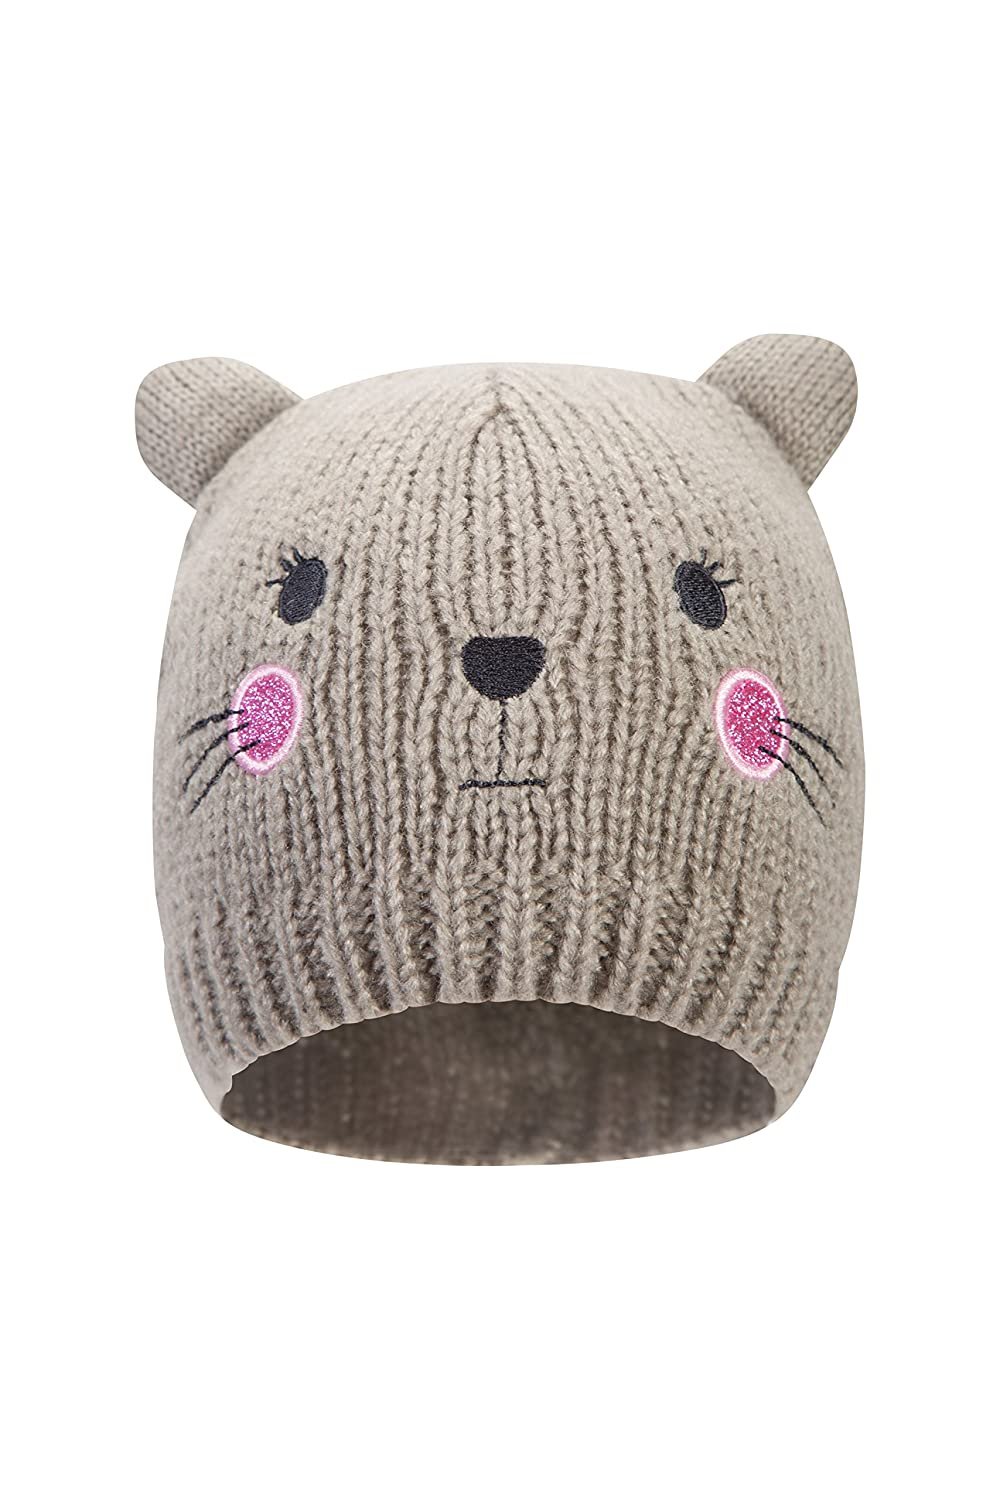 Mountain Warehouse Cat Kids Beanie - Warm Winter Cap Hat Grey 025546024001